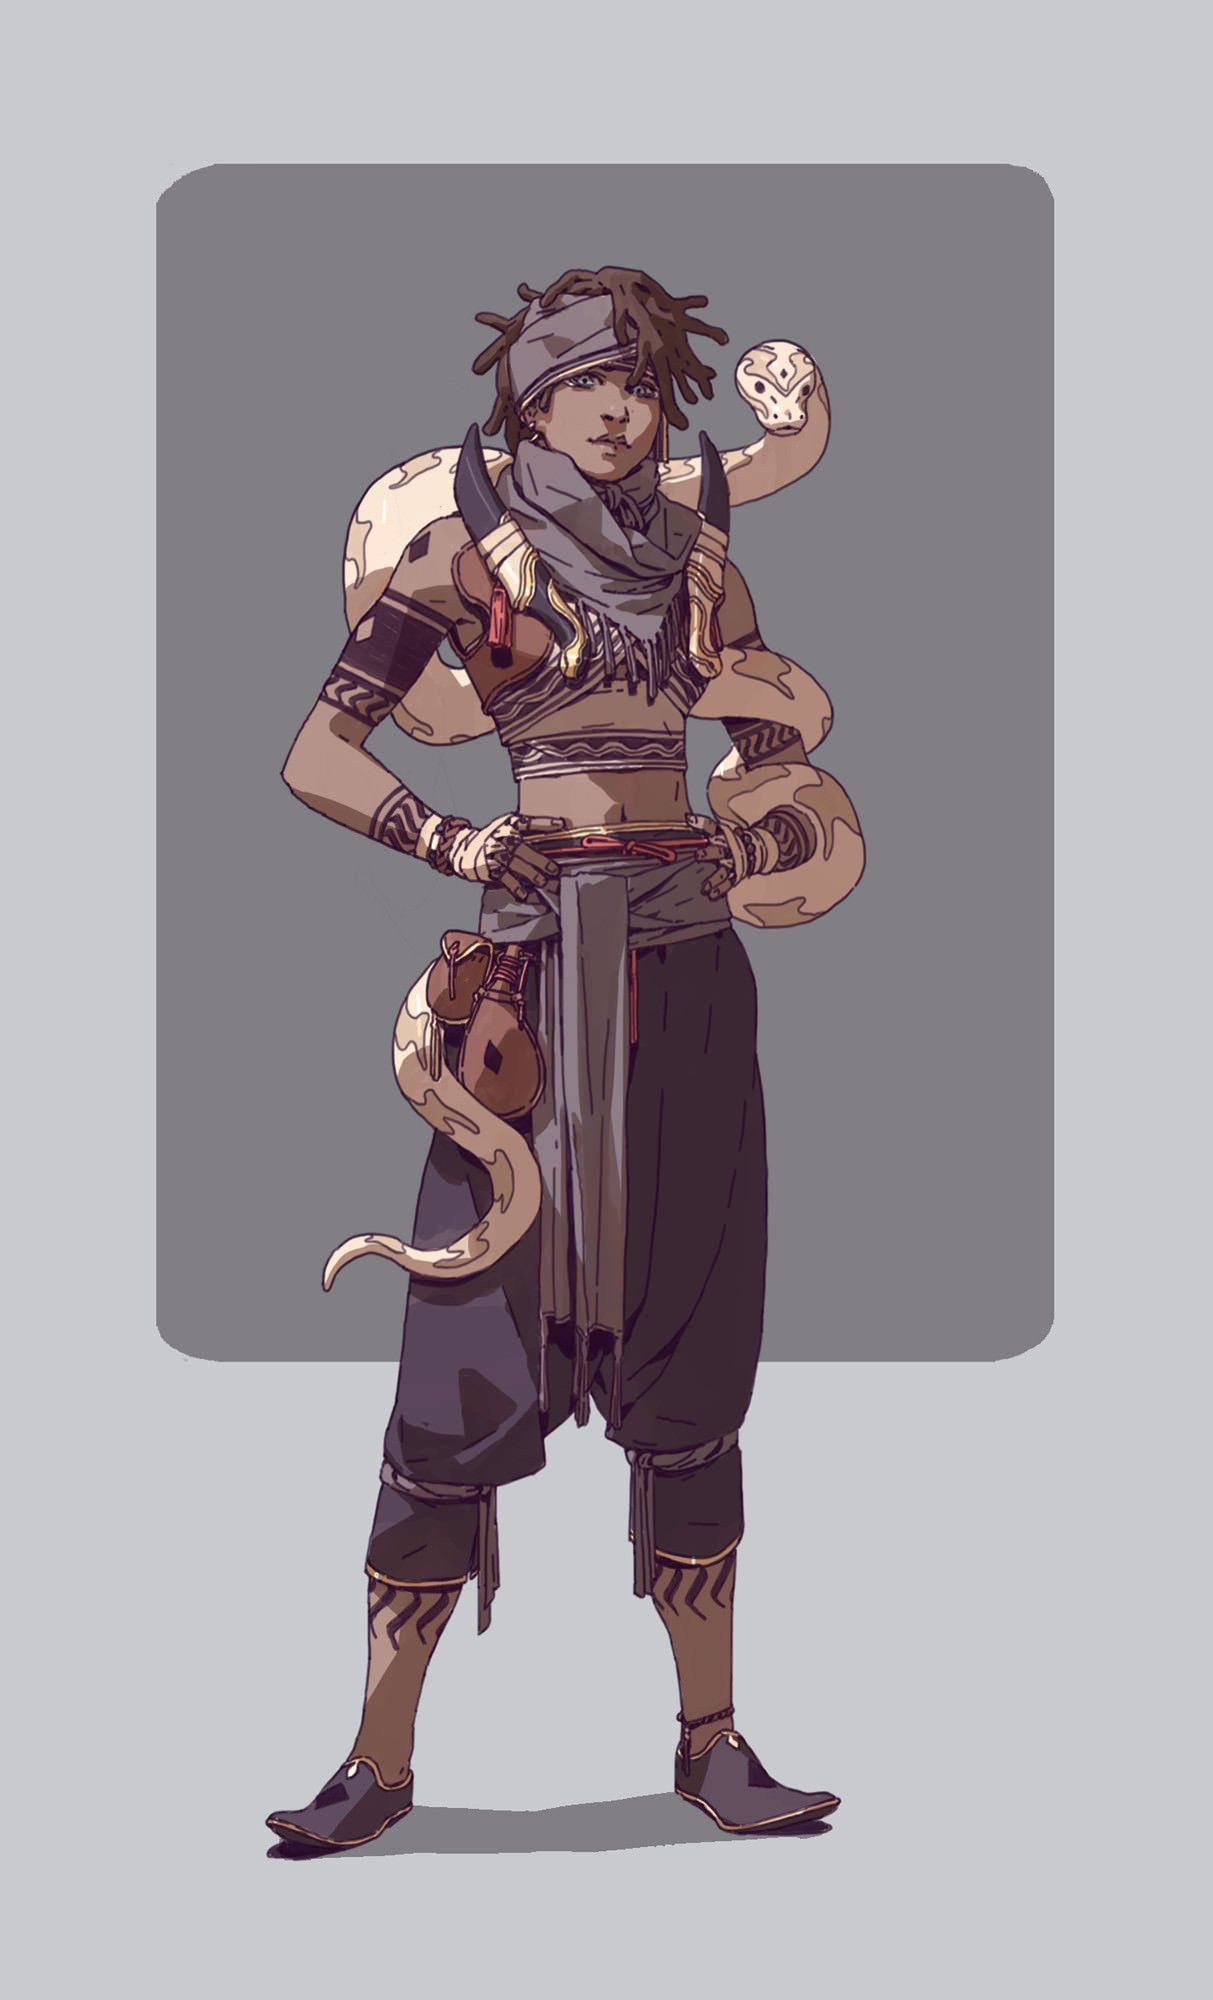 RPG Character References (300+ images) Album on Imgur